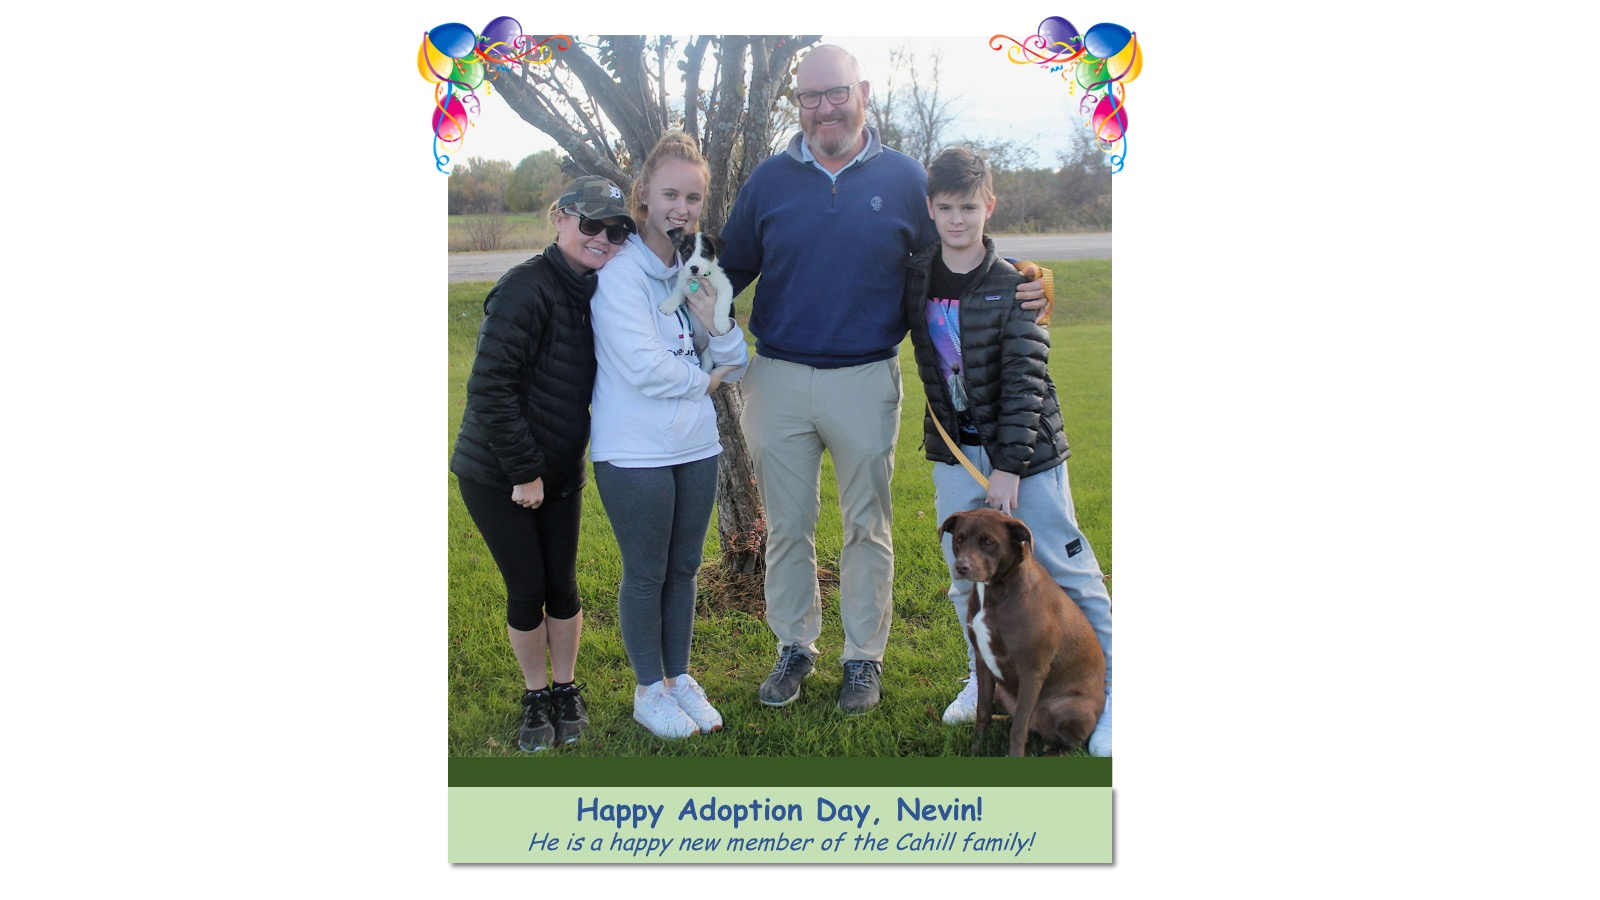 Nevin_Adoption_Photo_2018.jpg